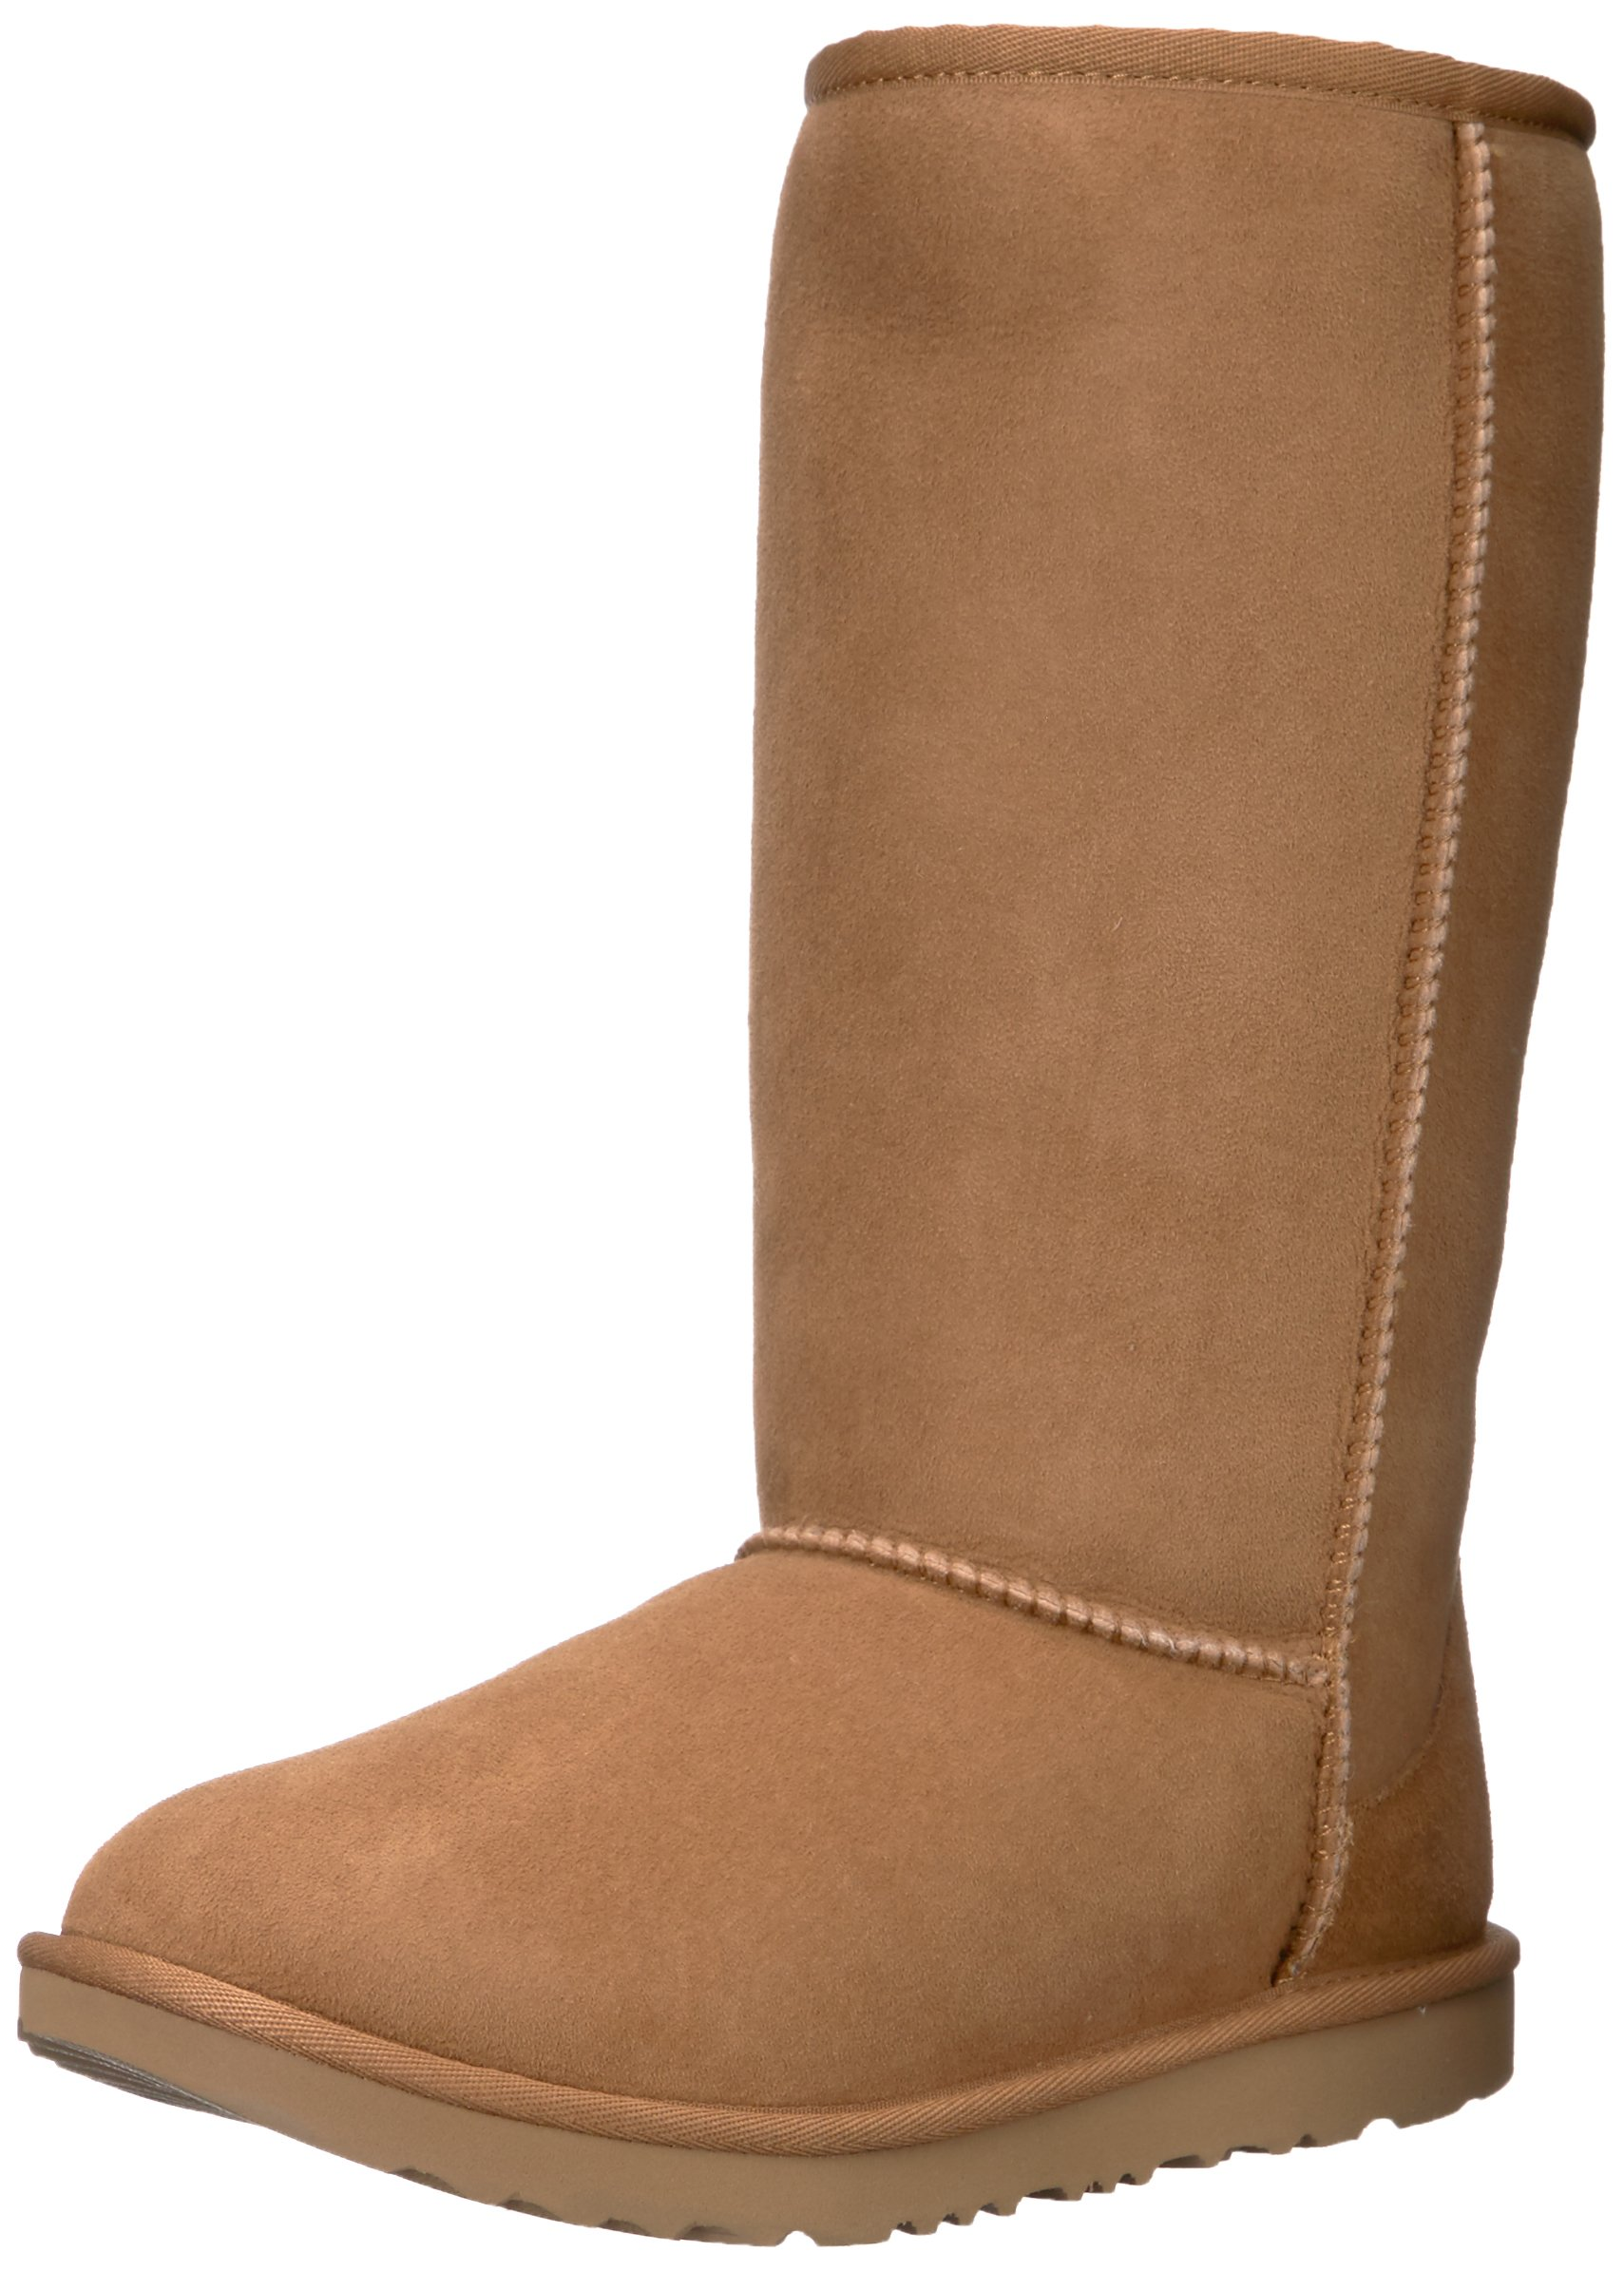 UGG Kids K Classic Tall II Pull-On Boot, Chestnut, 3 M US Little Kid